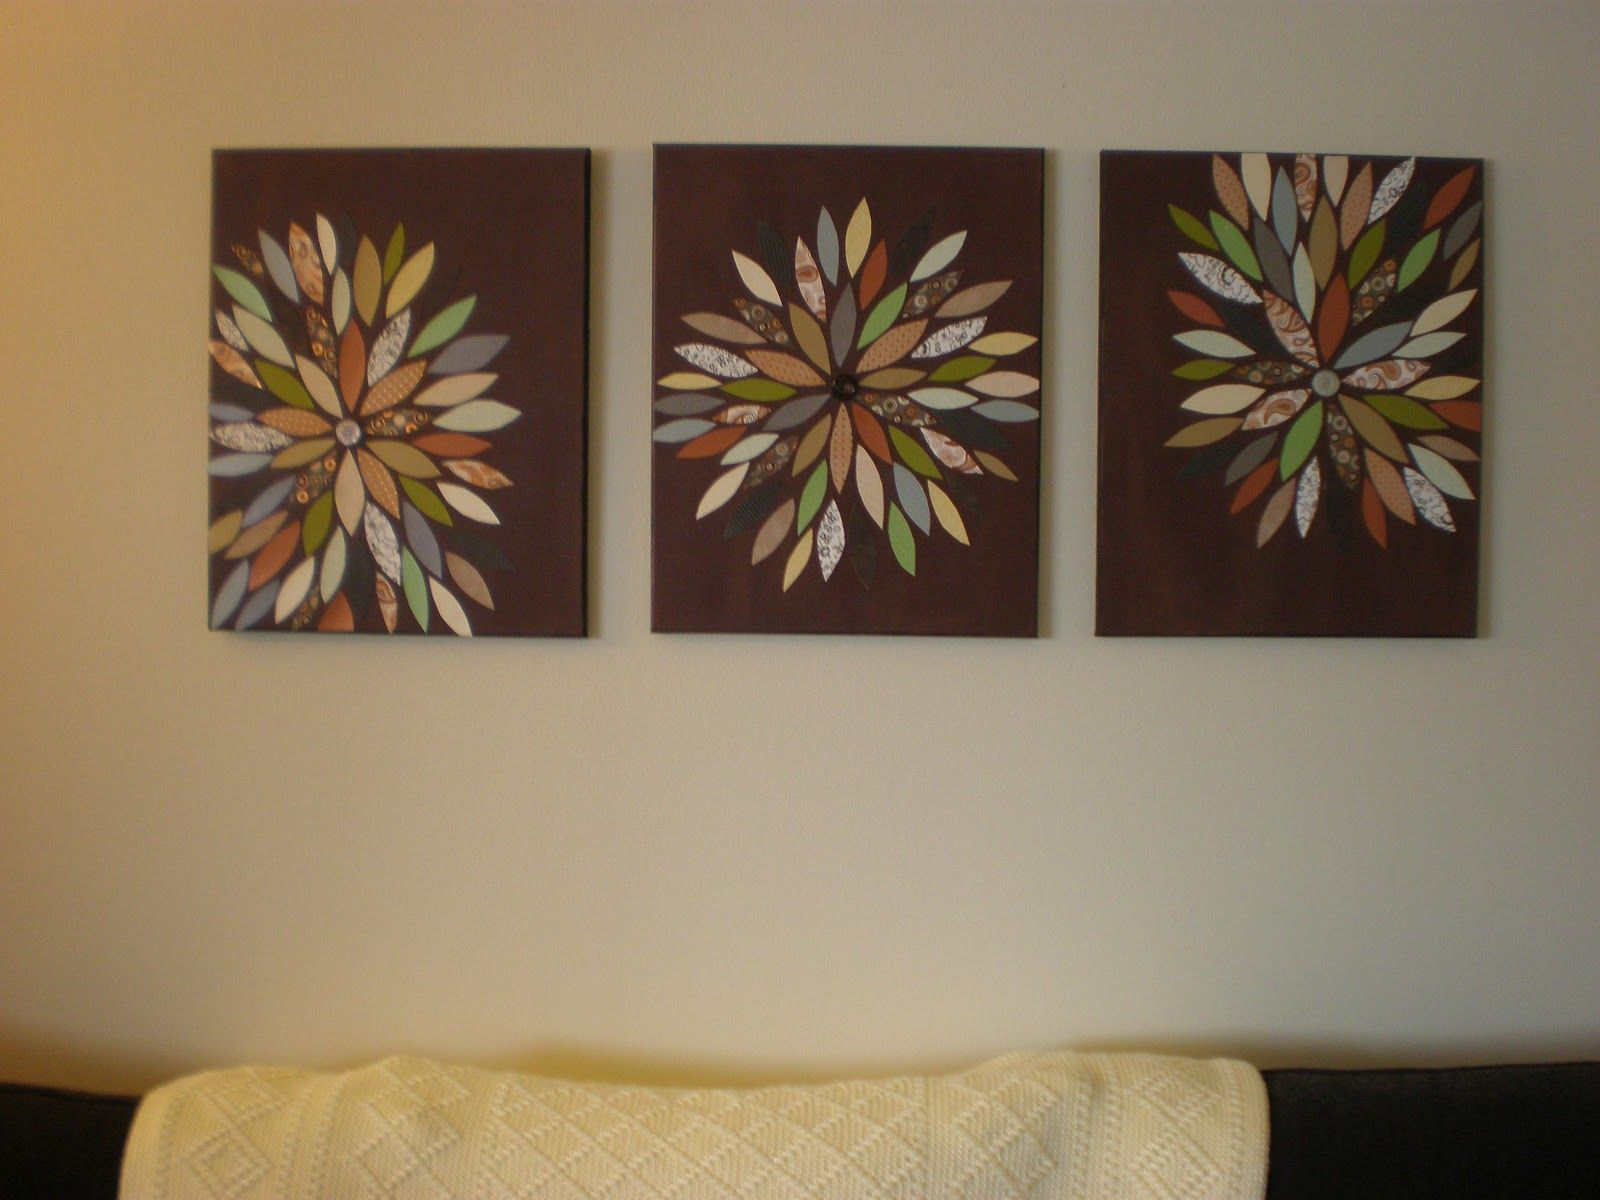 Diy art  Creative painting ideas for canvas are available in simple yet  cool three ways that each one